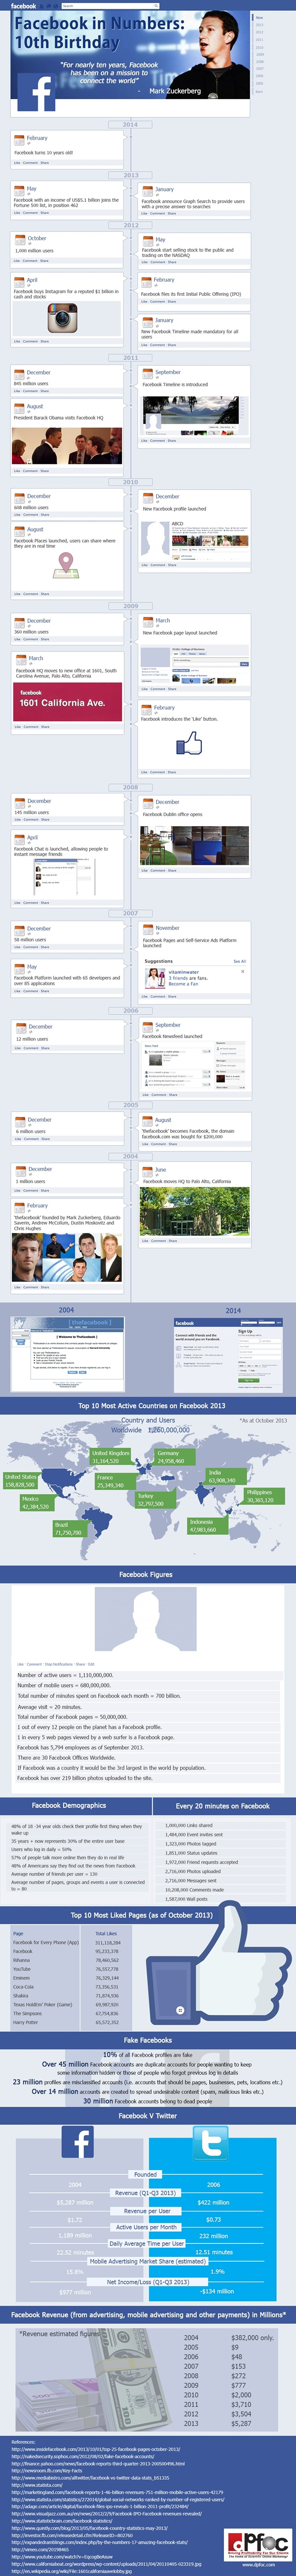 FacebookTurns10Infographic